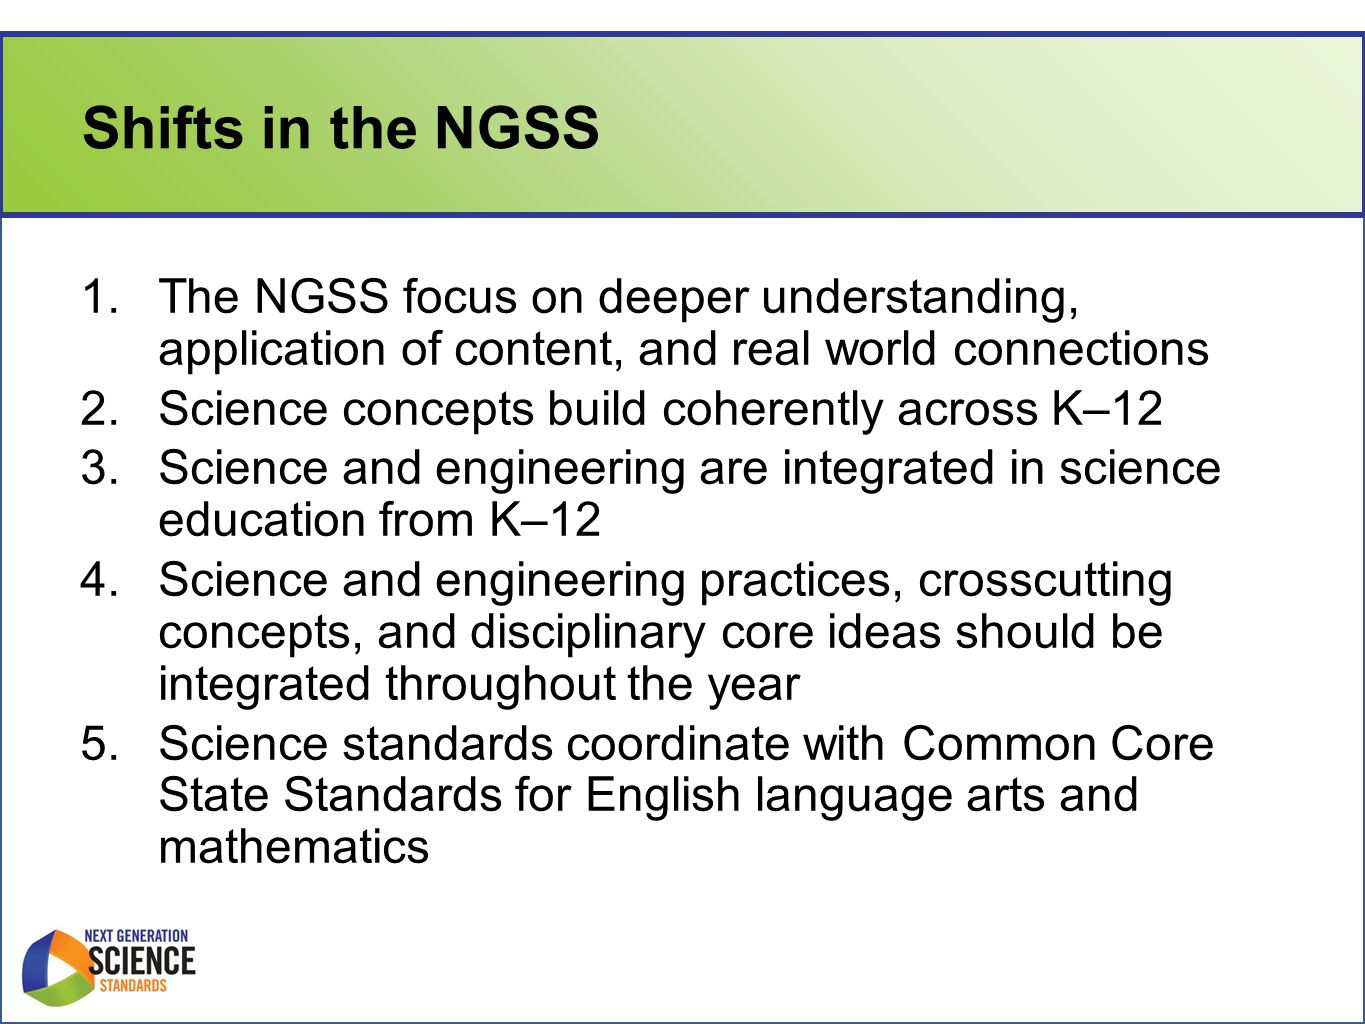 Shifts in the NGSS 1.The NGSS focus on deeper understanding, application of content, and real world connections 2.Science concepts build coherently across K–12 3.Science and engineering are integrated in science education from K–12 4.Science and engineering practices, crosscutting concepts, and disciplinary core ideas should be integrated throughout the year 5.Science standards coordinate with Common Core State Standards for English language arts and mathematics